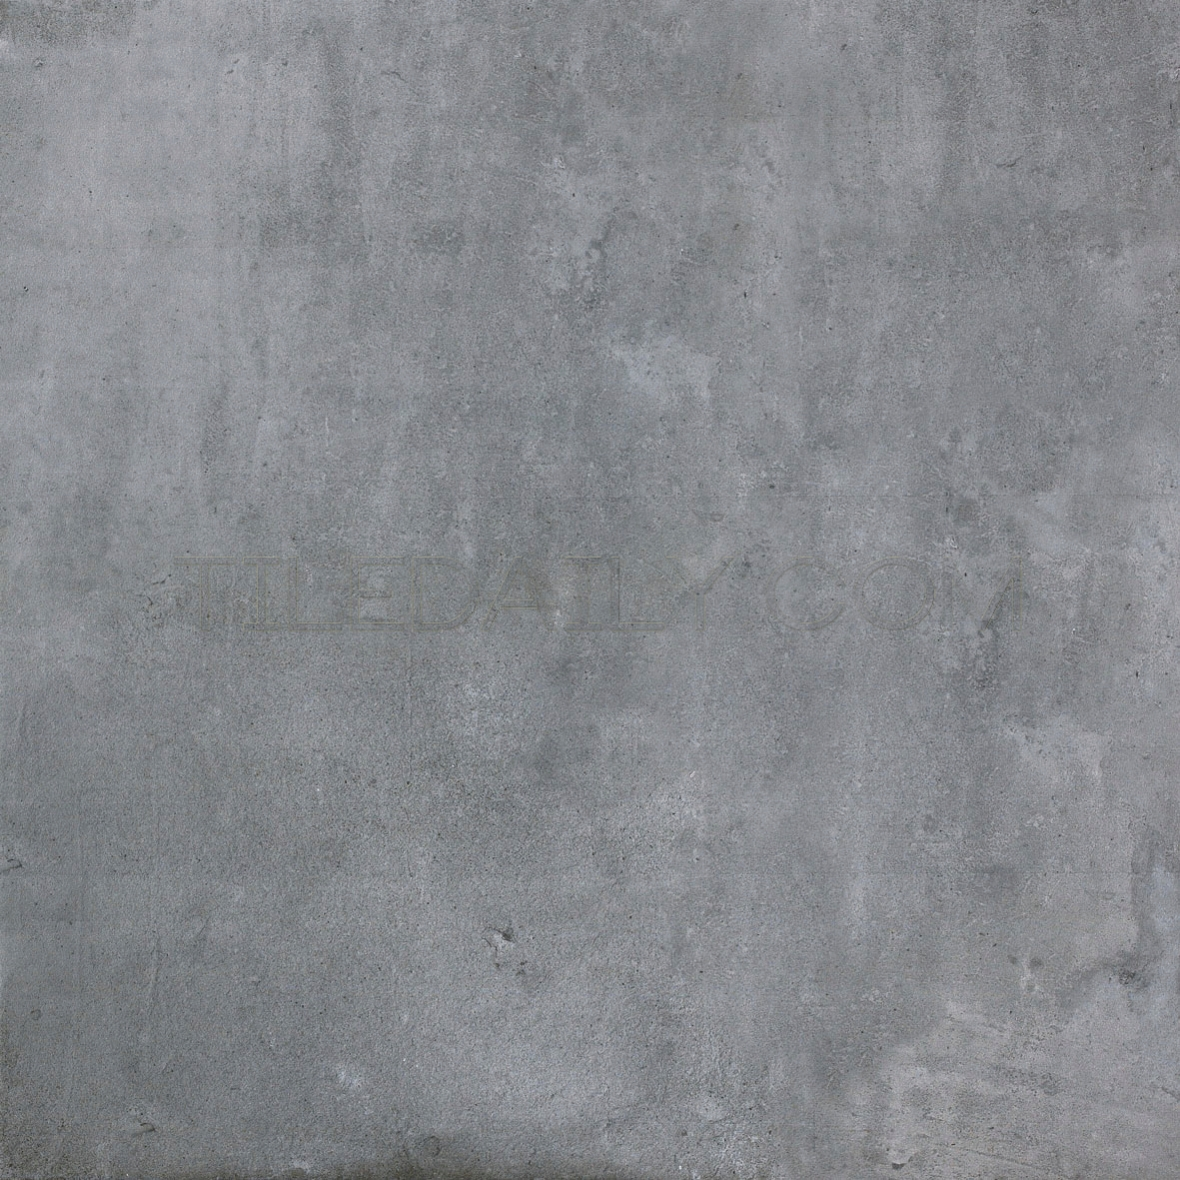 24x24 Cement Series Porcelain Tile, Grey at TileDaily